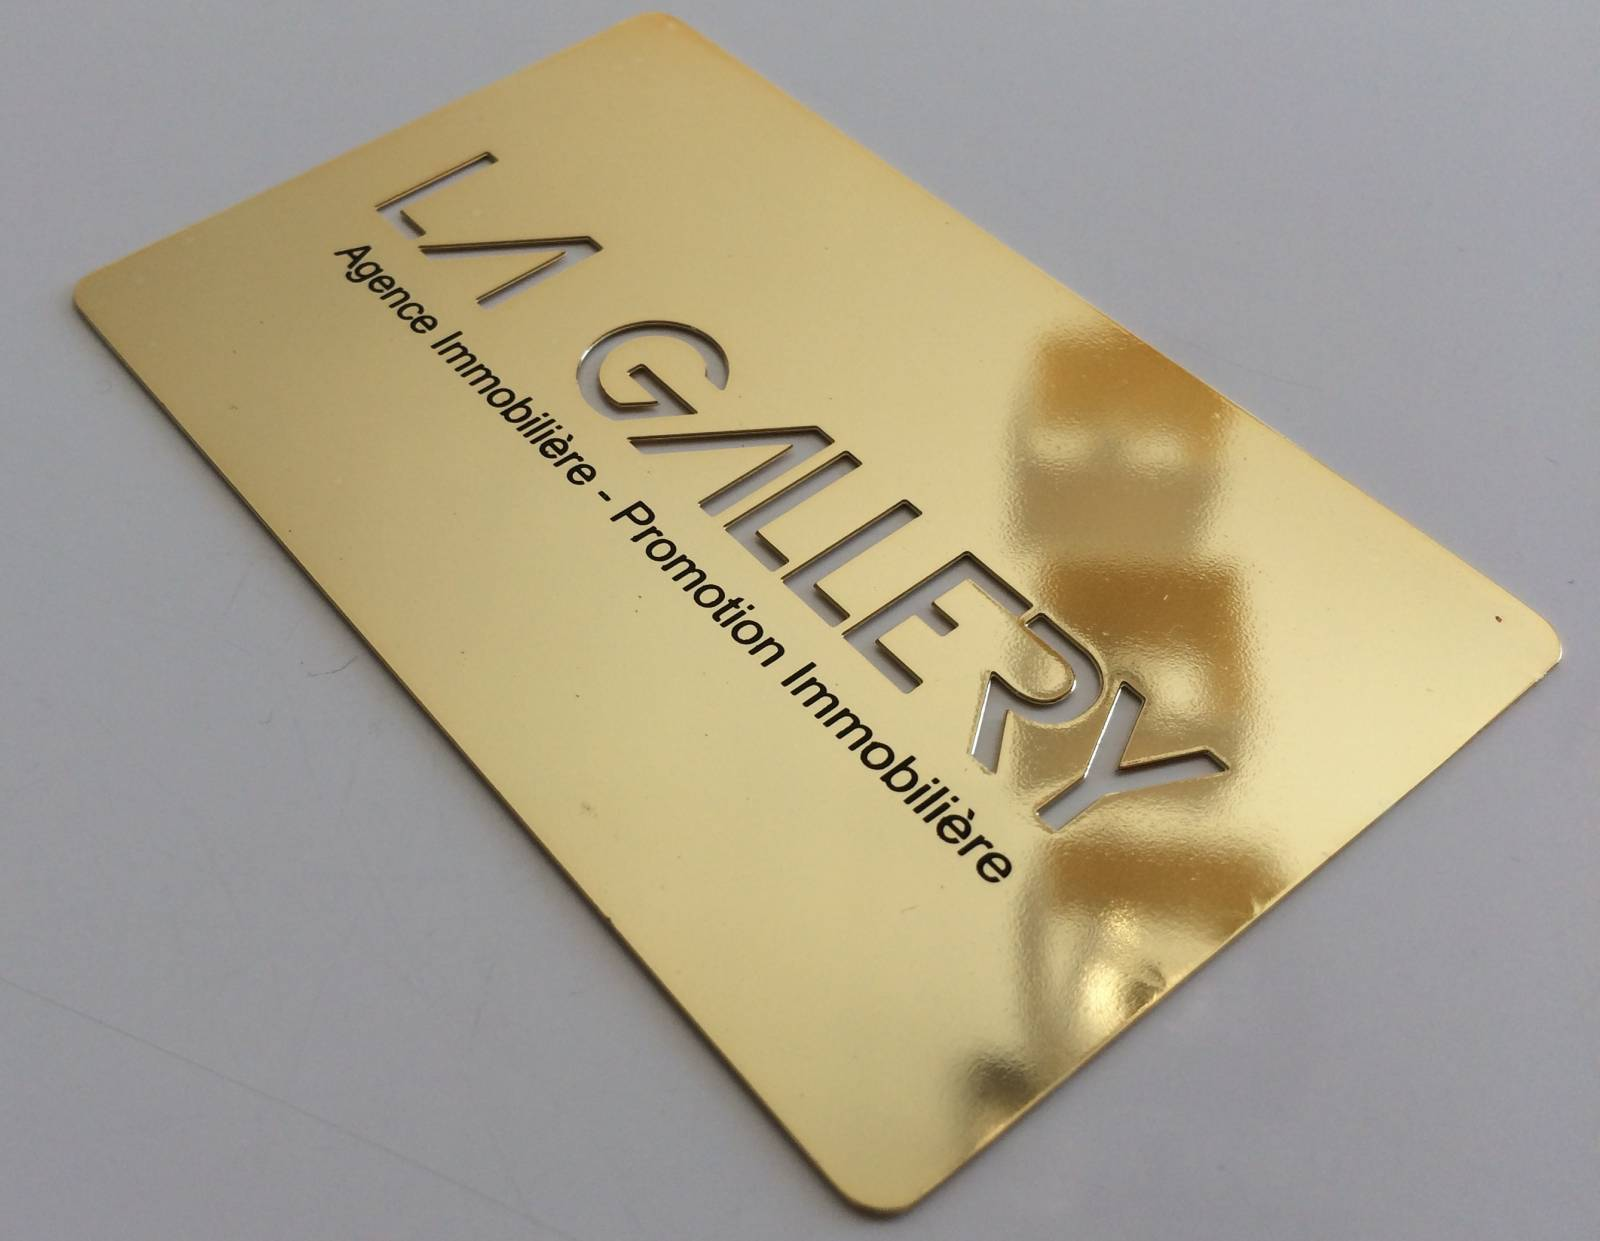 Carte Originale En Metal Or Brillant Perforee Haute De Gamme Pour Agent Immobilier A Angers Visite